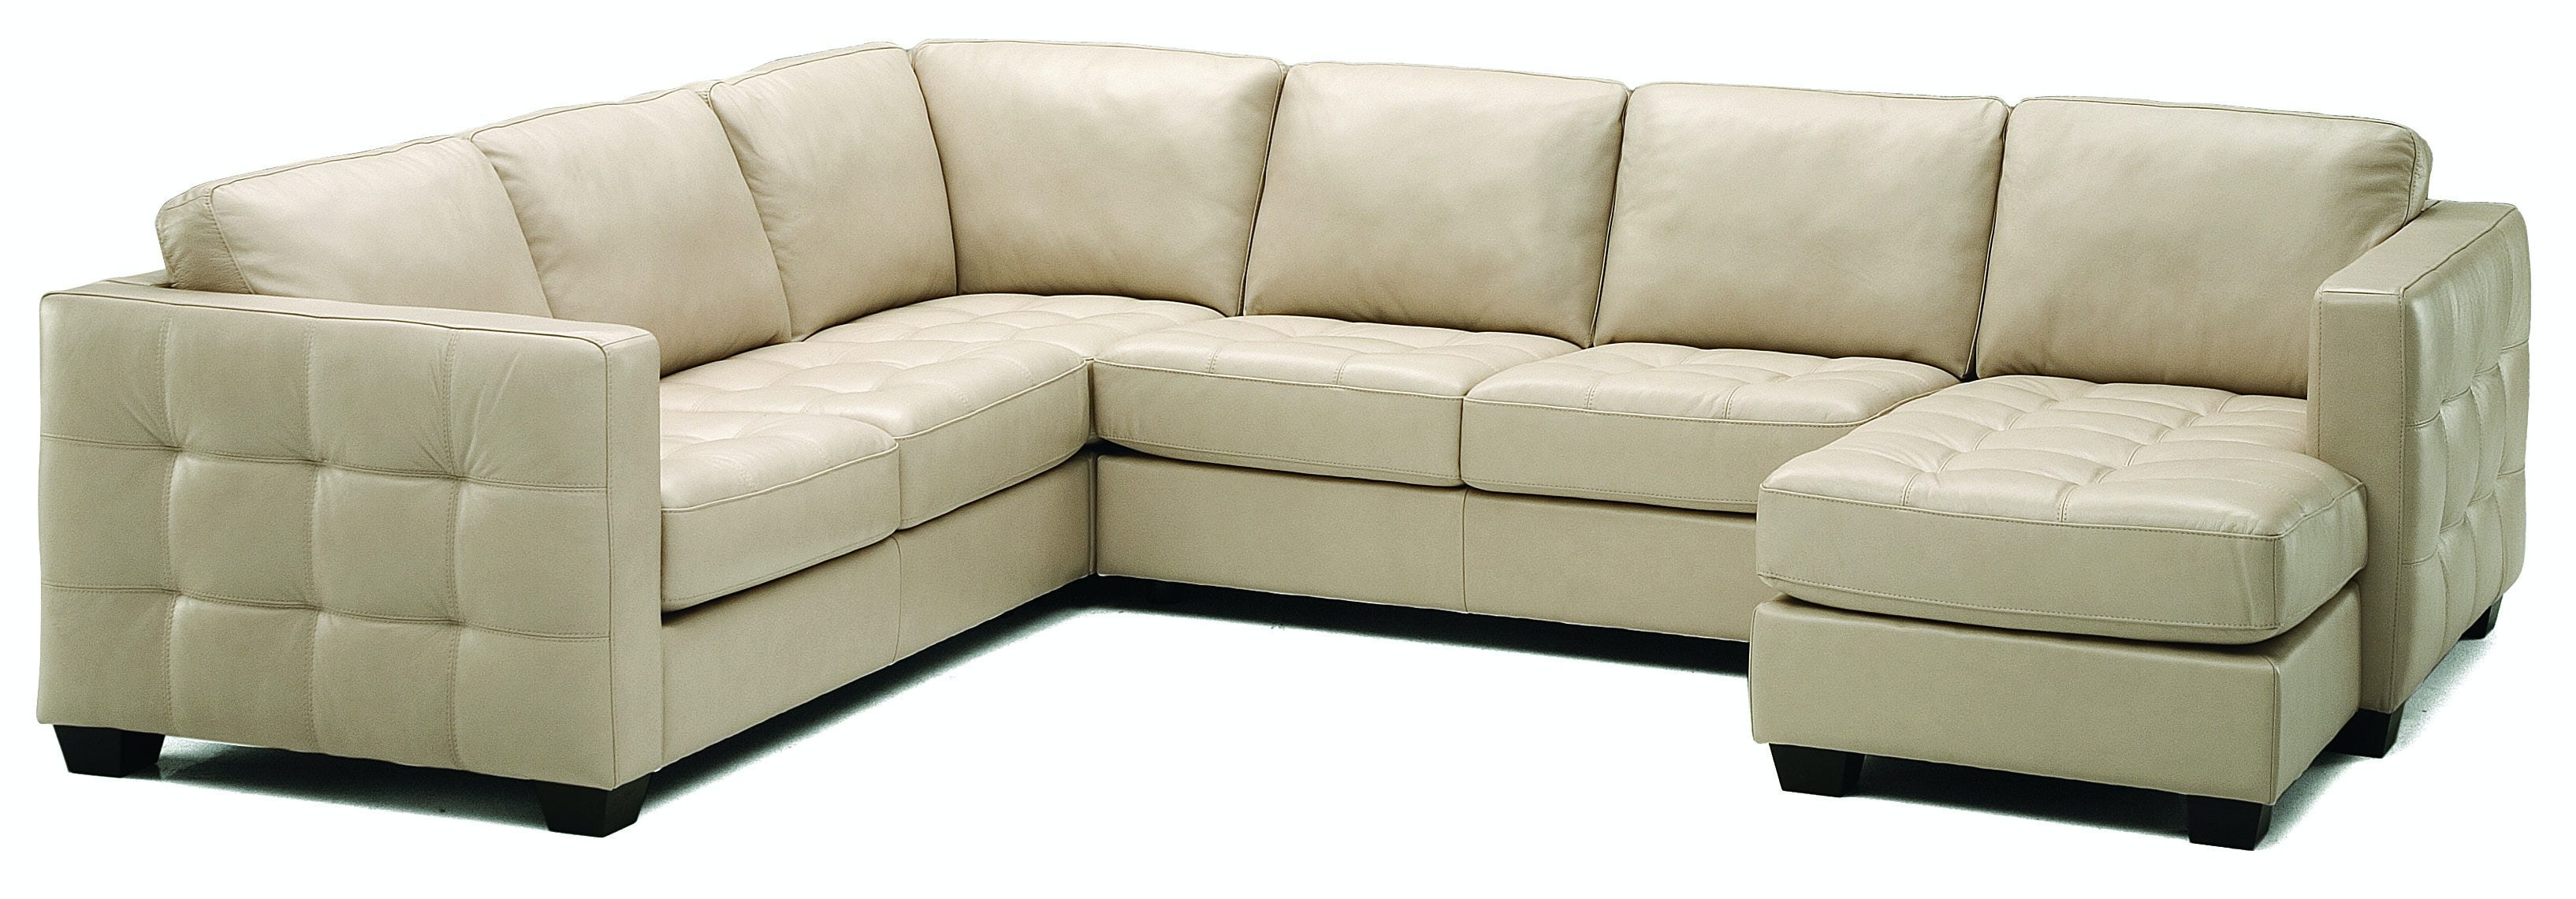 sofas etc towson md tan leather at dfs sofa store home and textiles 77558 sectional sqm1wt85